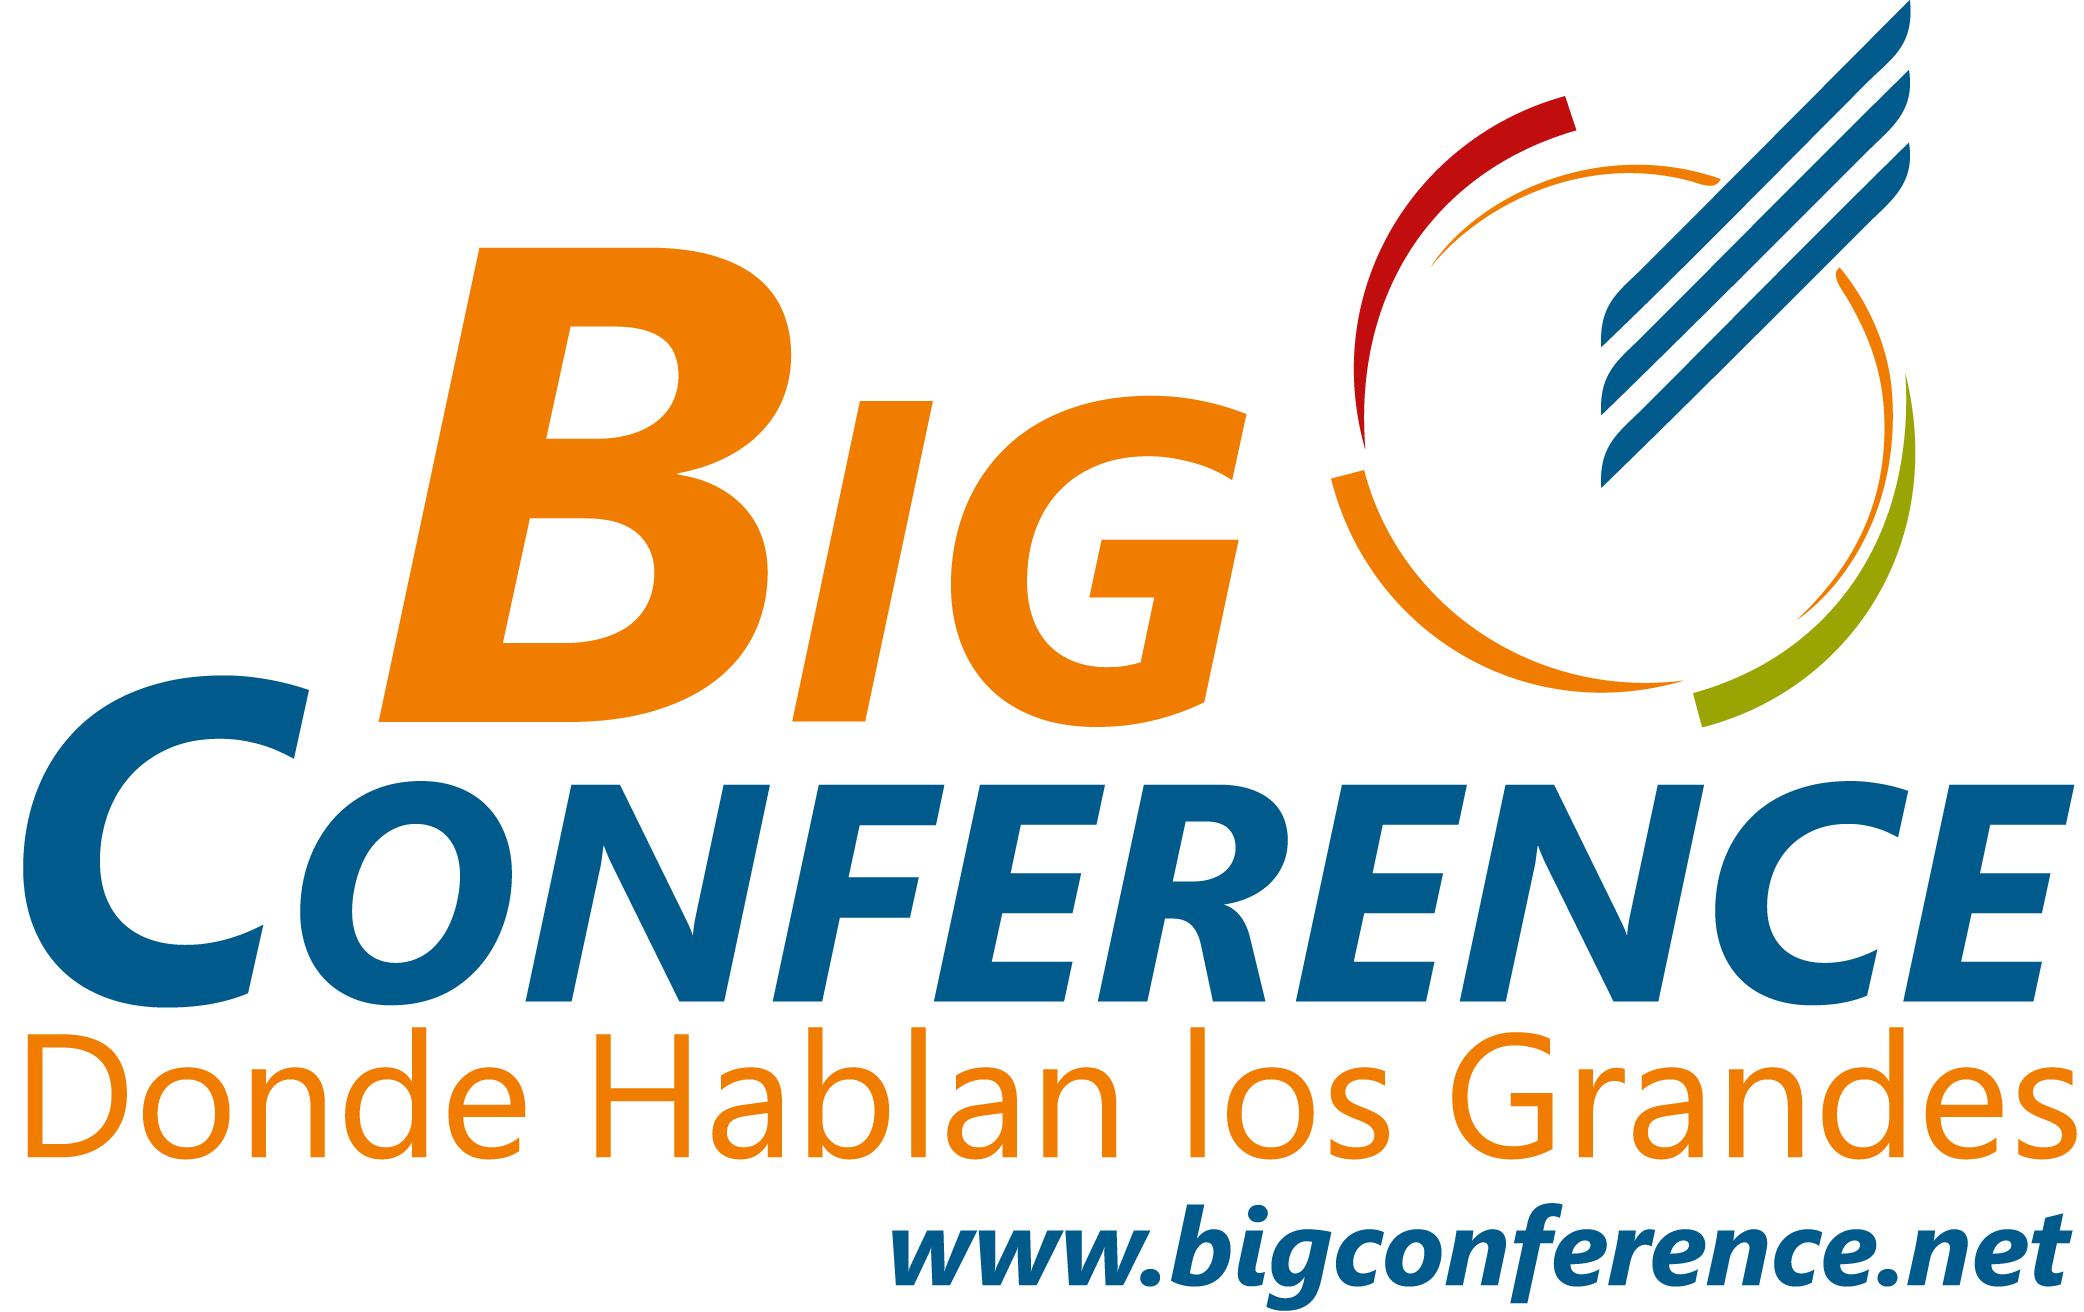 Bigconference